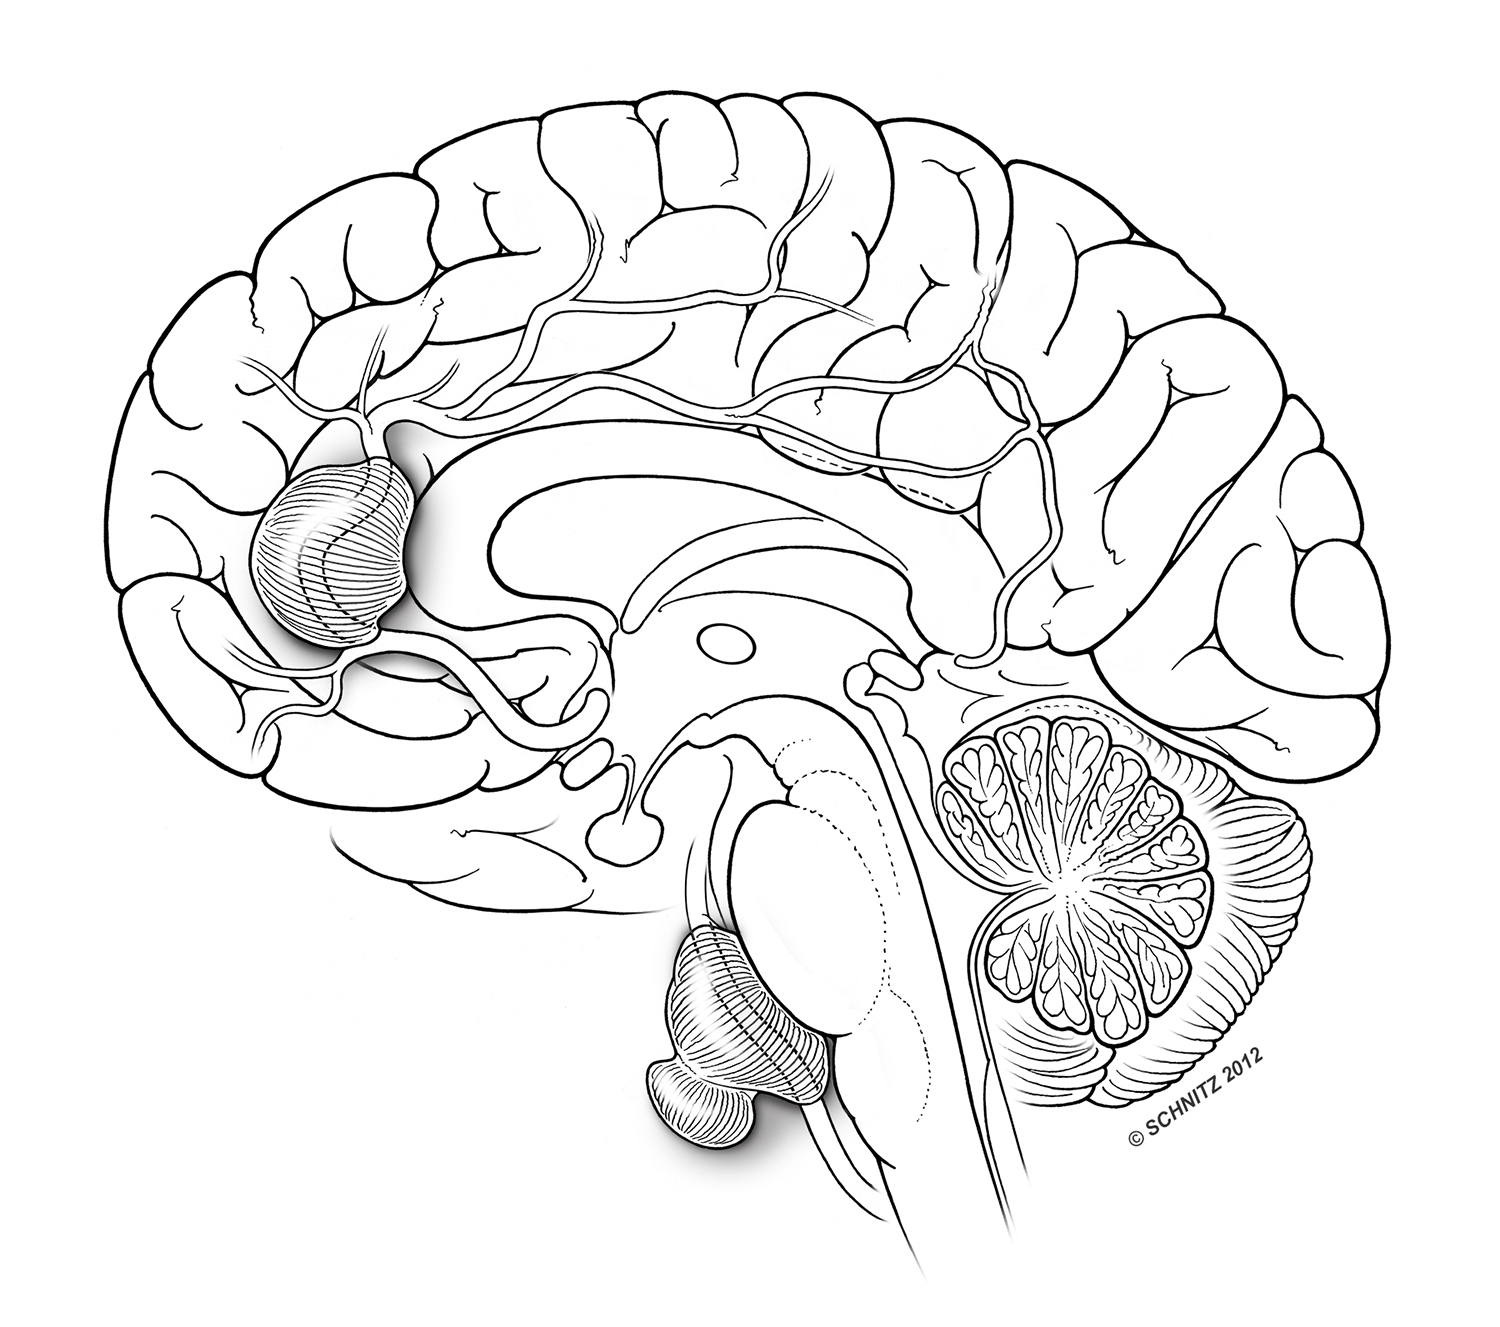 Schnitz Brain Illustration